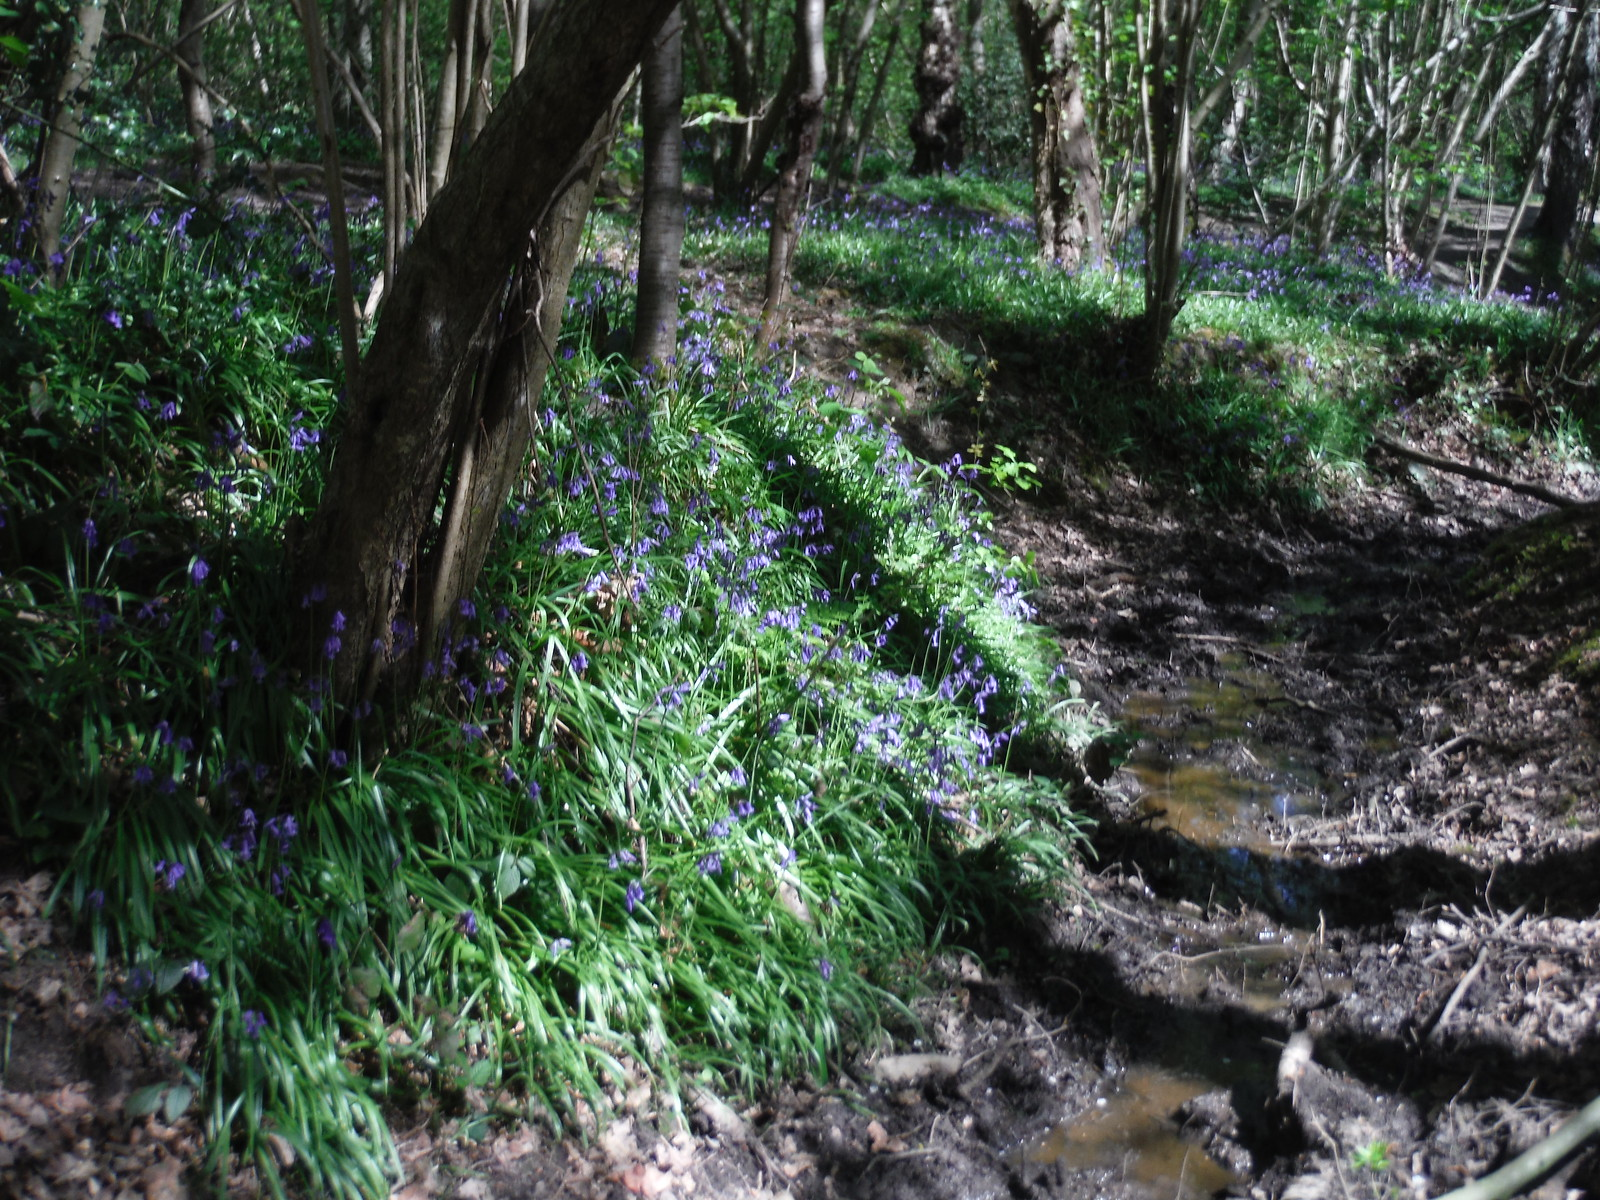 Bluebells along Stream in Oxleas Wood SWC Short Walk 44 - Oxleas Wood and Shooters Hill (Falconwood Circular)